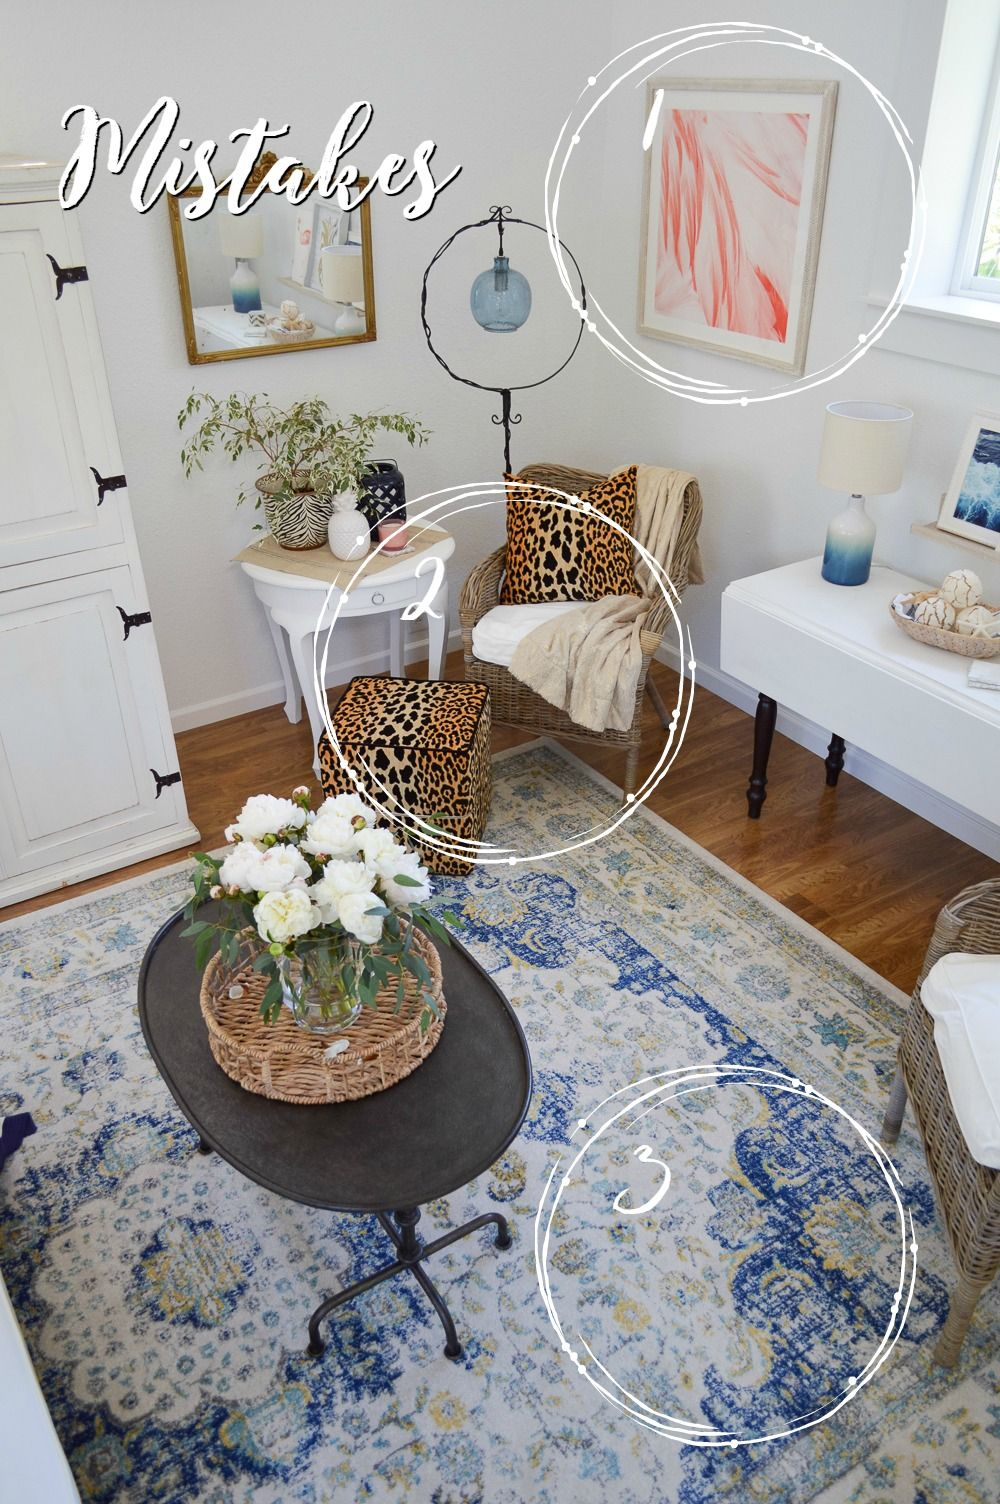 BEFORE New Home Decorating Tips and Ideas